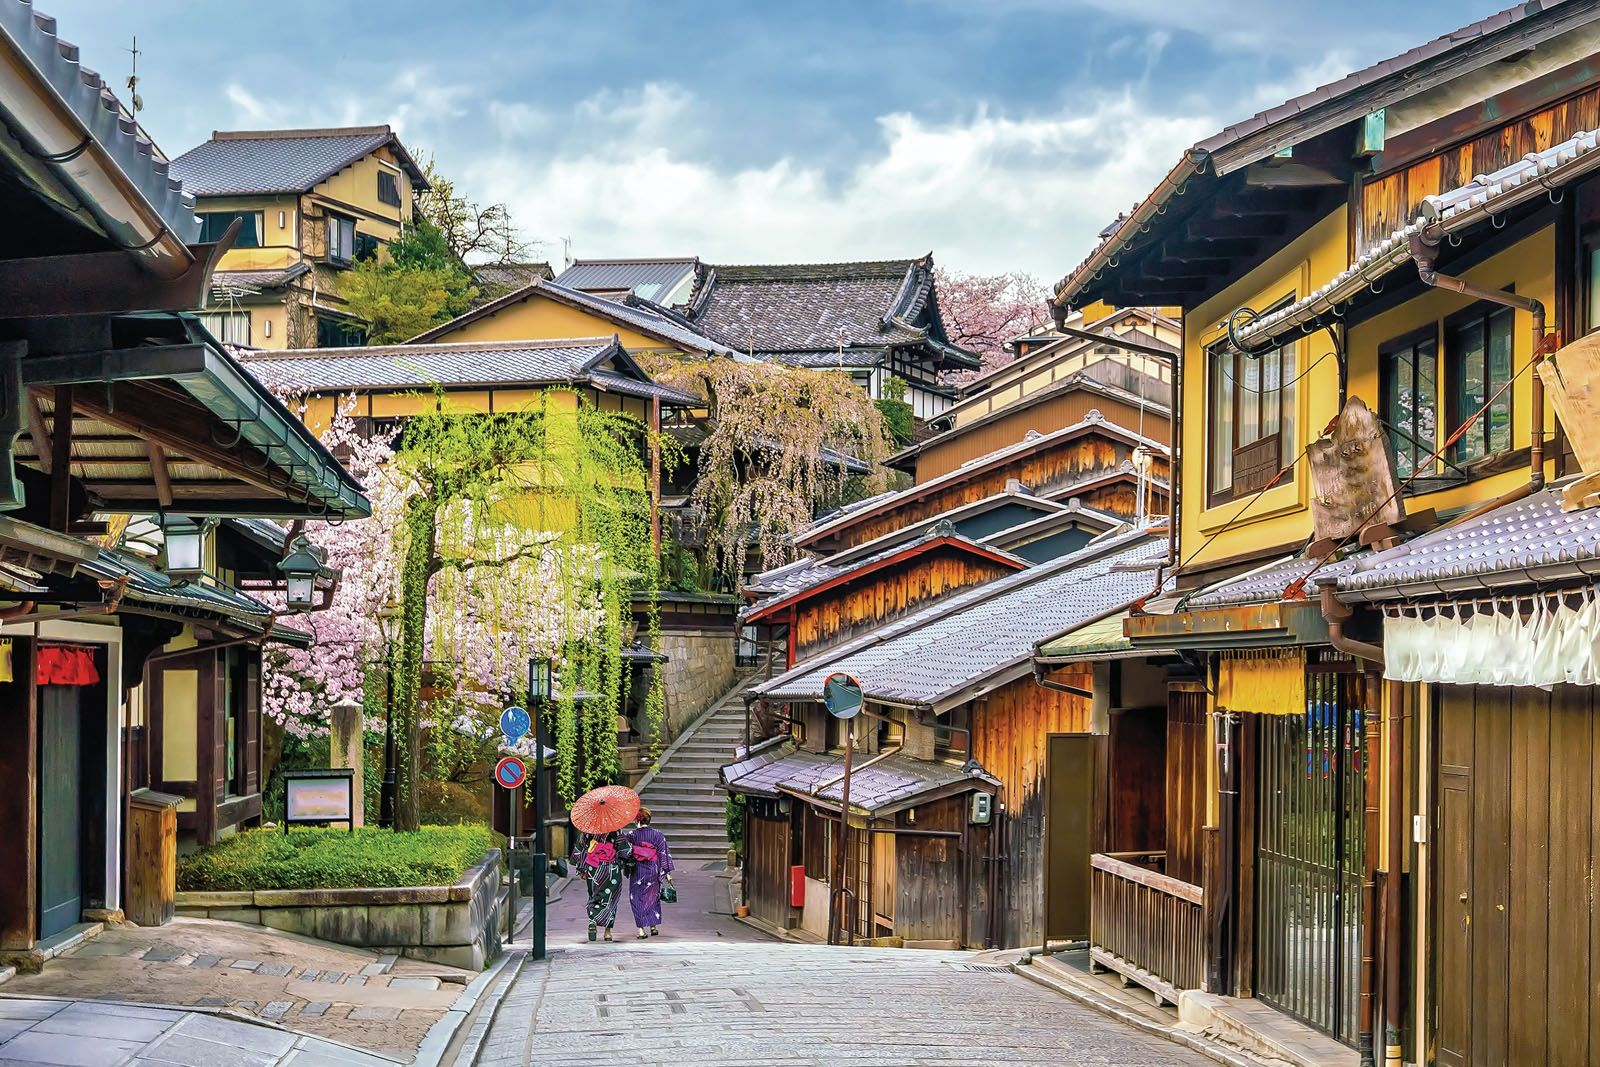 The winding paths leading up to temples as well as the city's backstreets are prime spots for a quintessential photograph of Kyoto